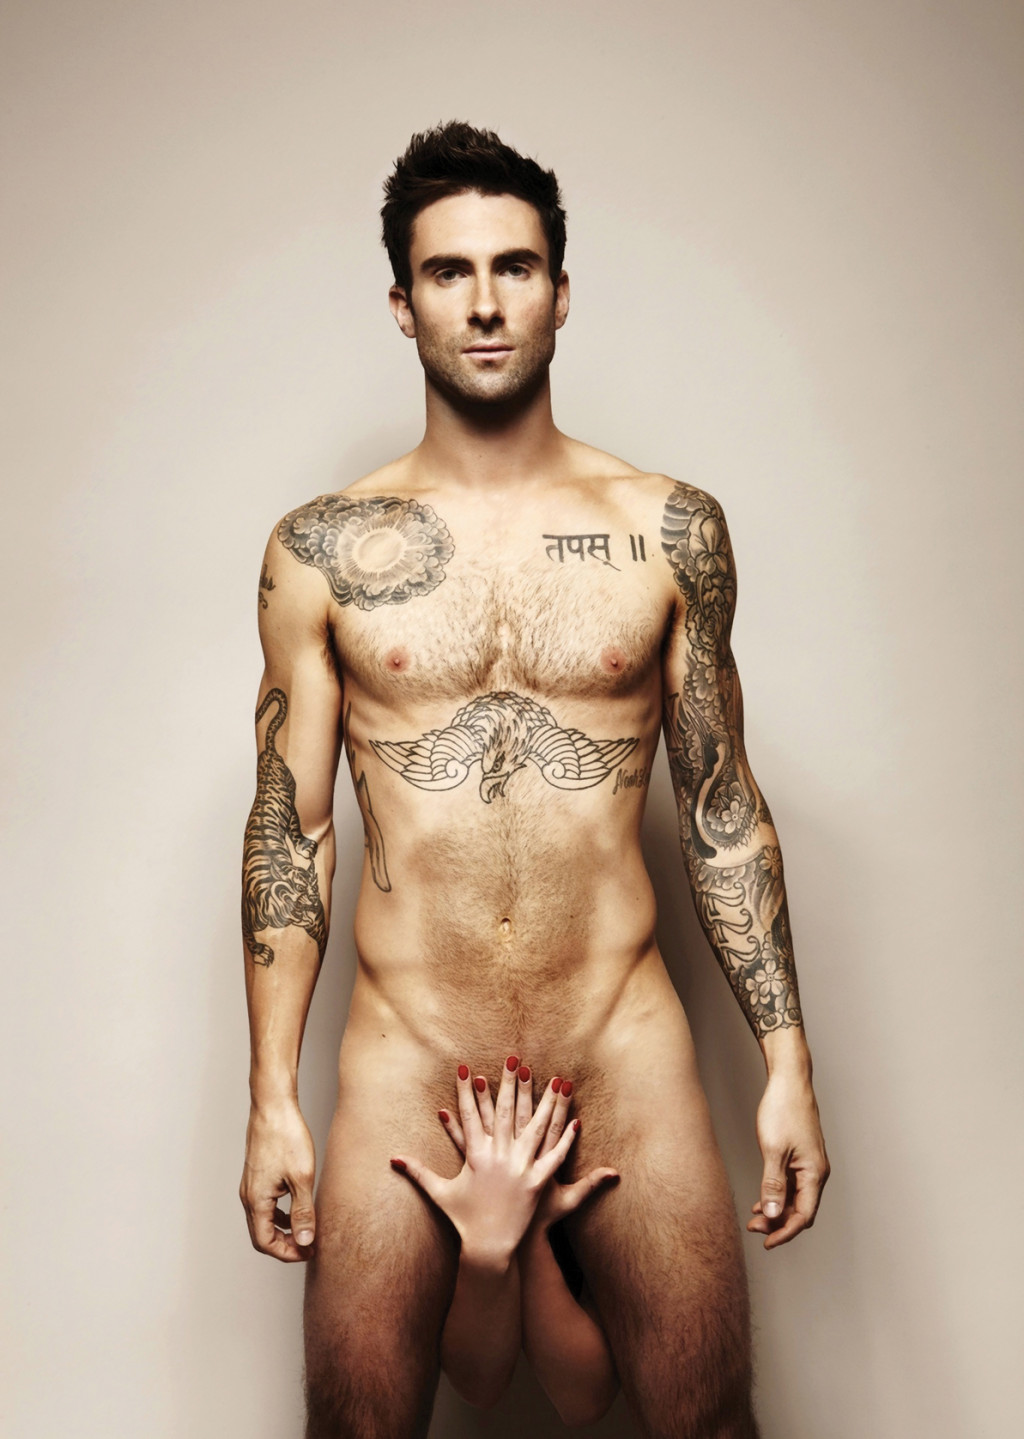 Adam Levine naked pic